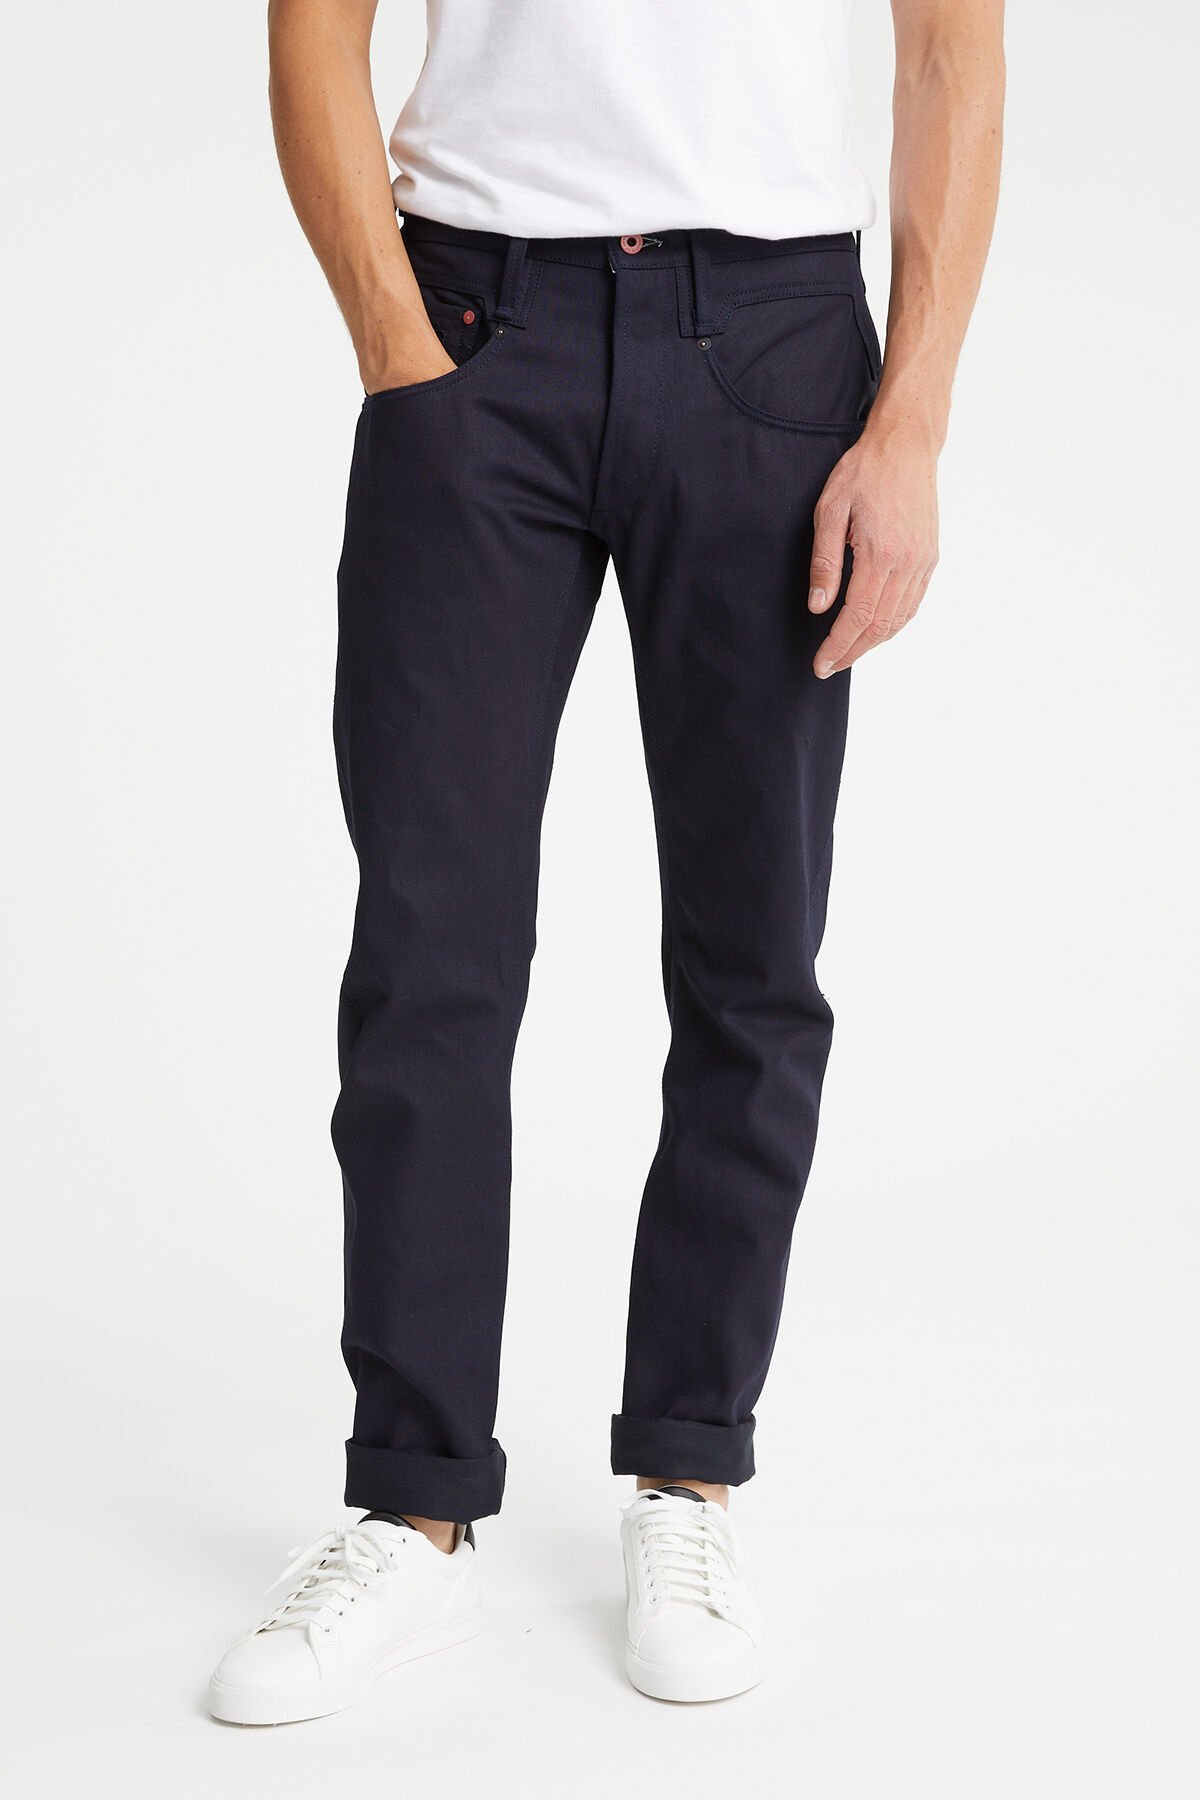 CROSSBACK Double-Dyed Virgin Indigo Denim - Carrot Fit